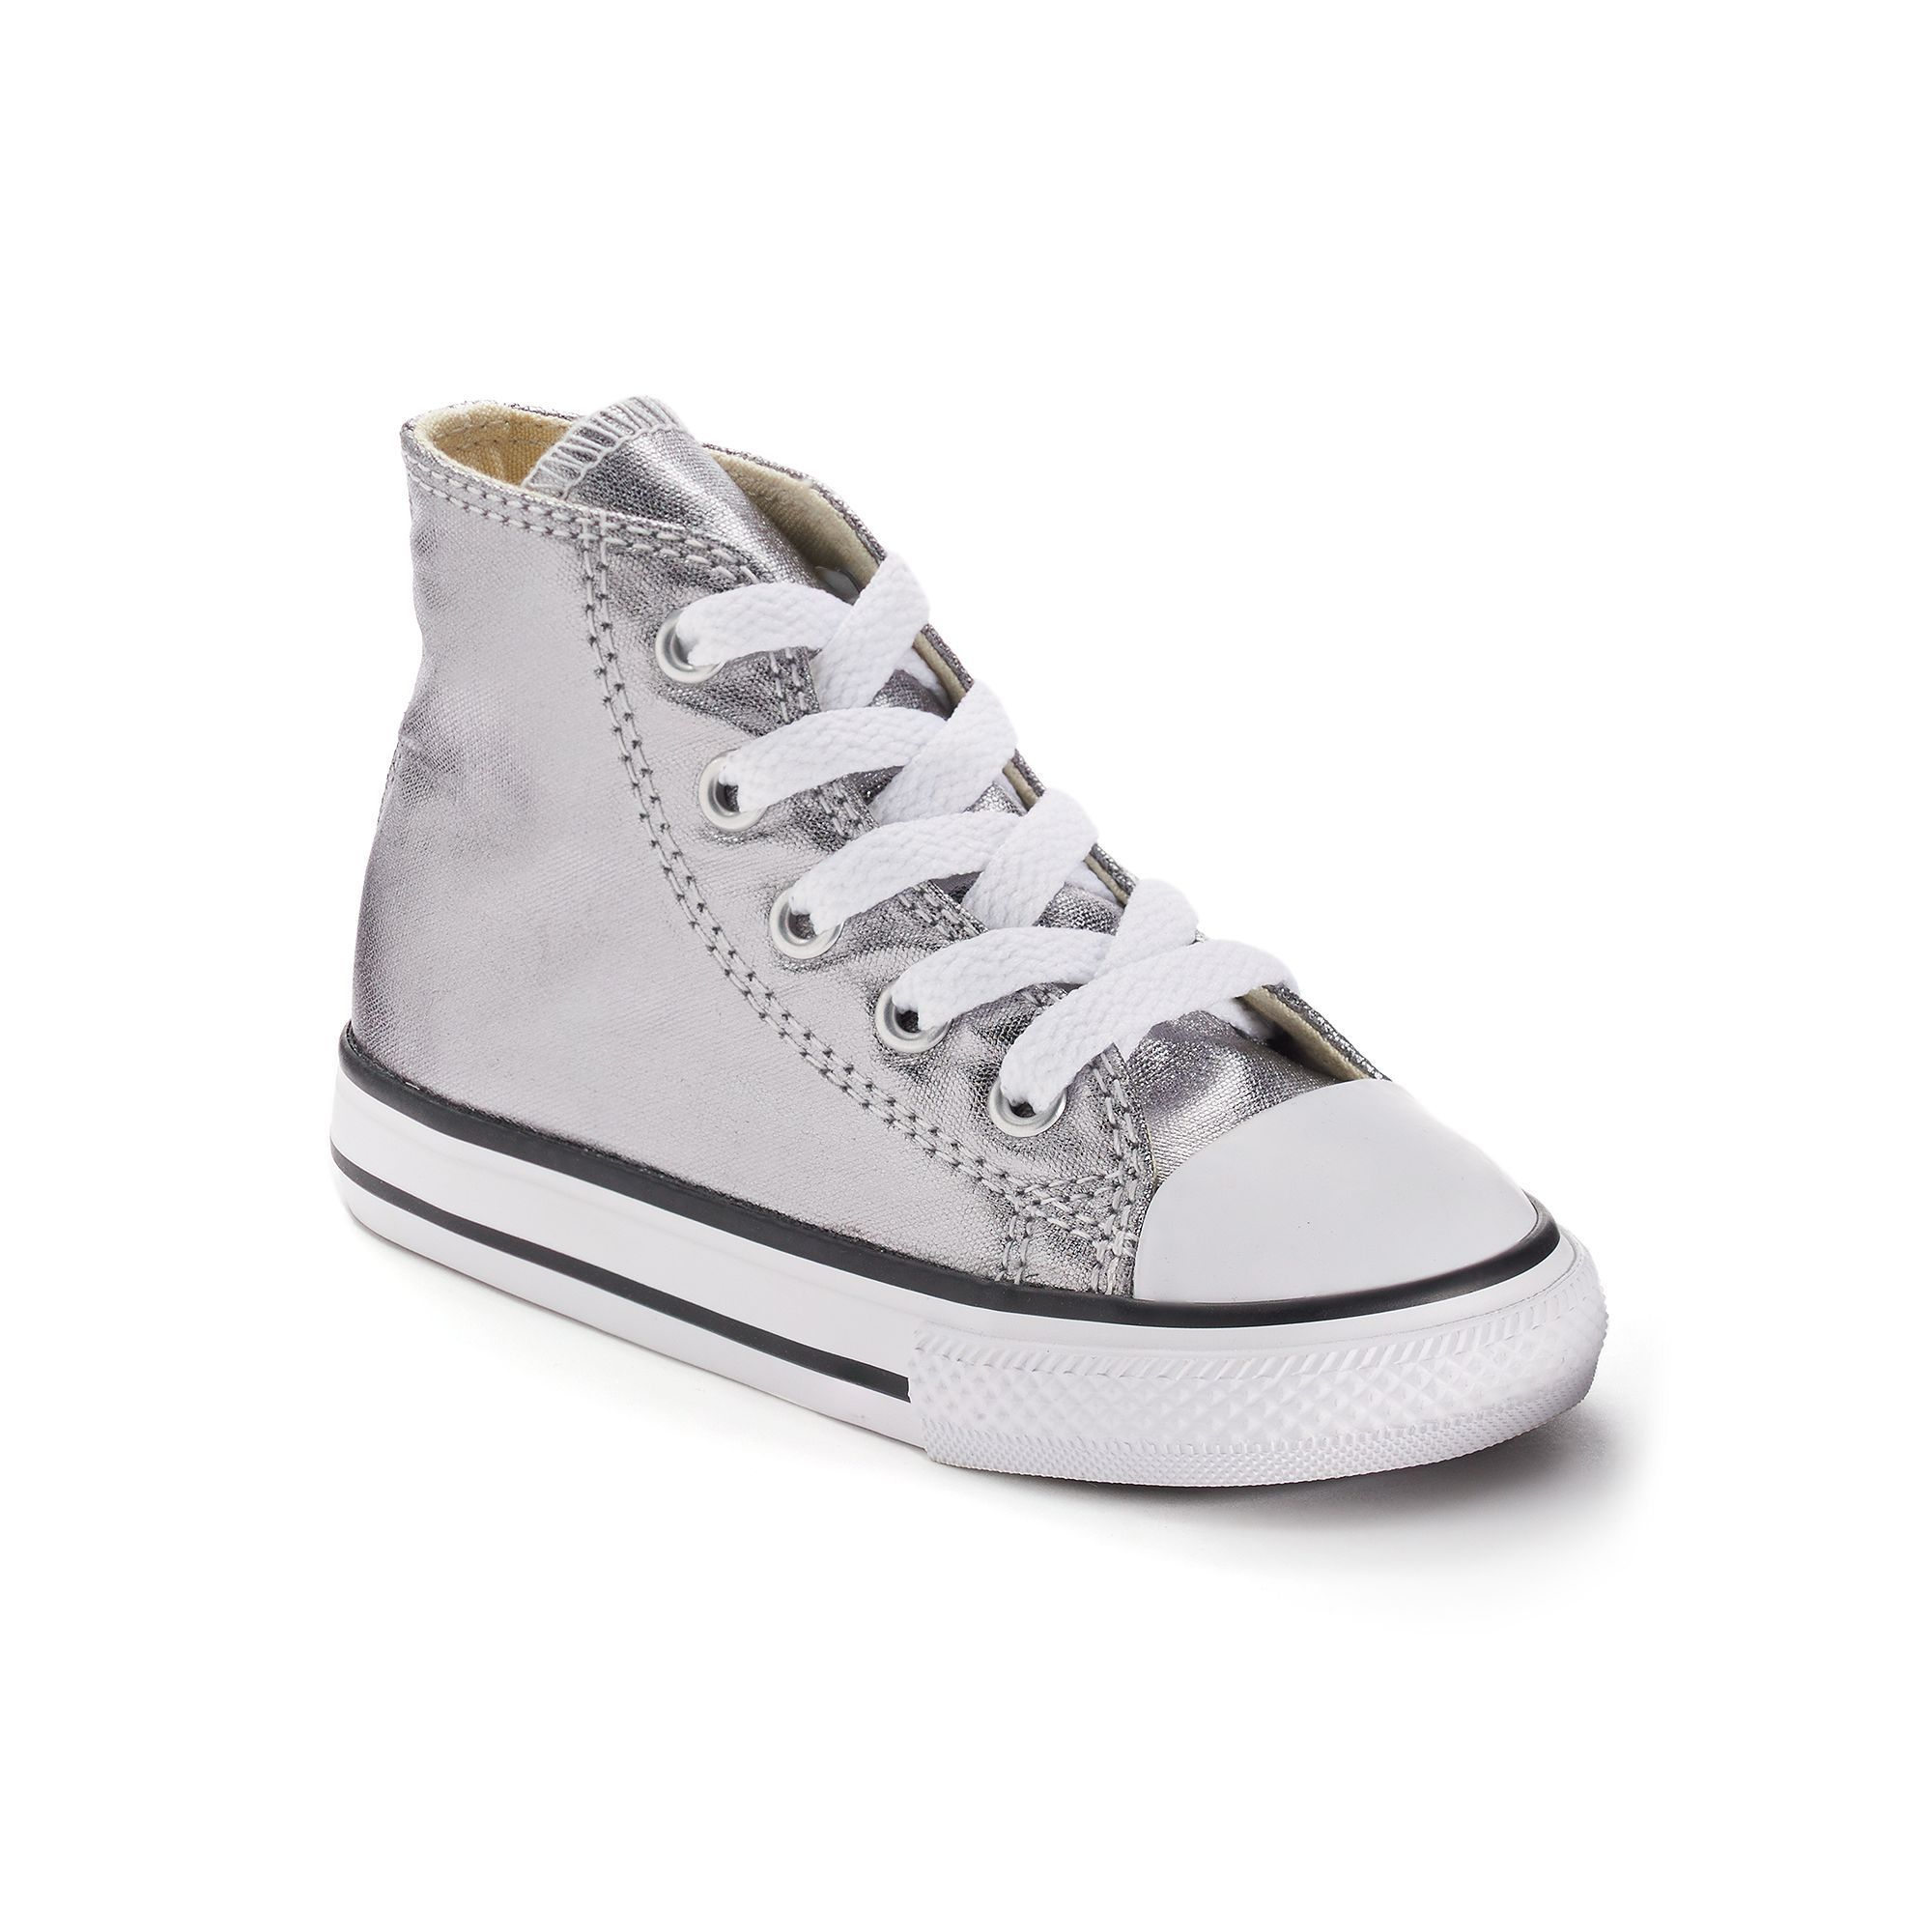 be1ae1d0235 Toddler Converse Chuck Taylor All Star Metallic High-Top Sneakers ...